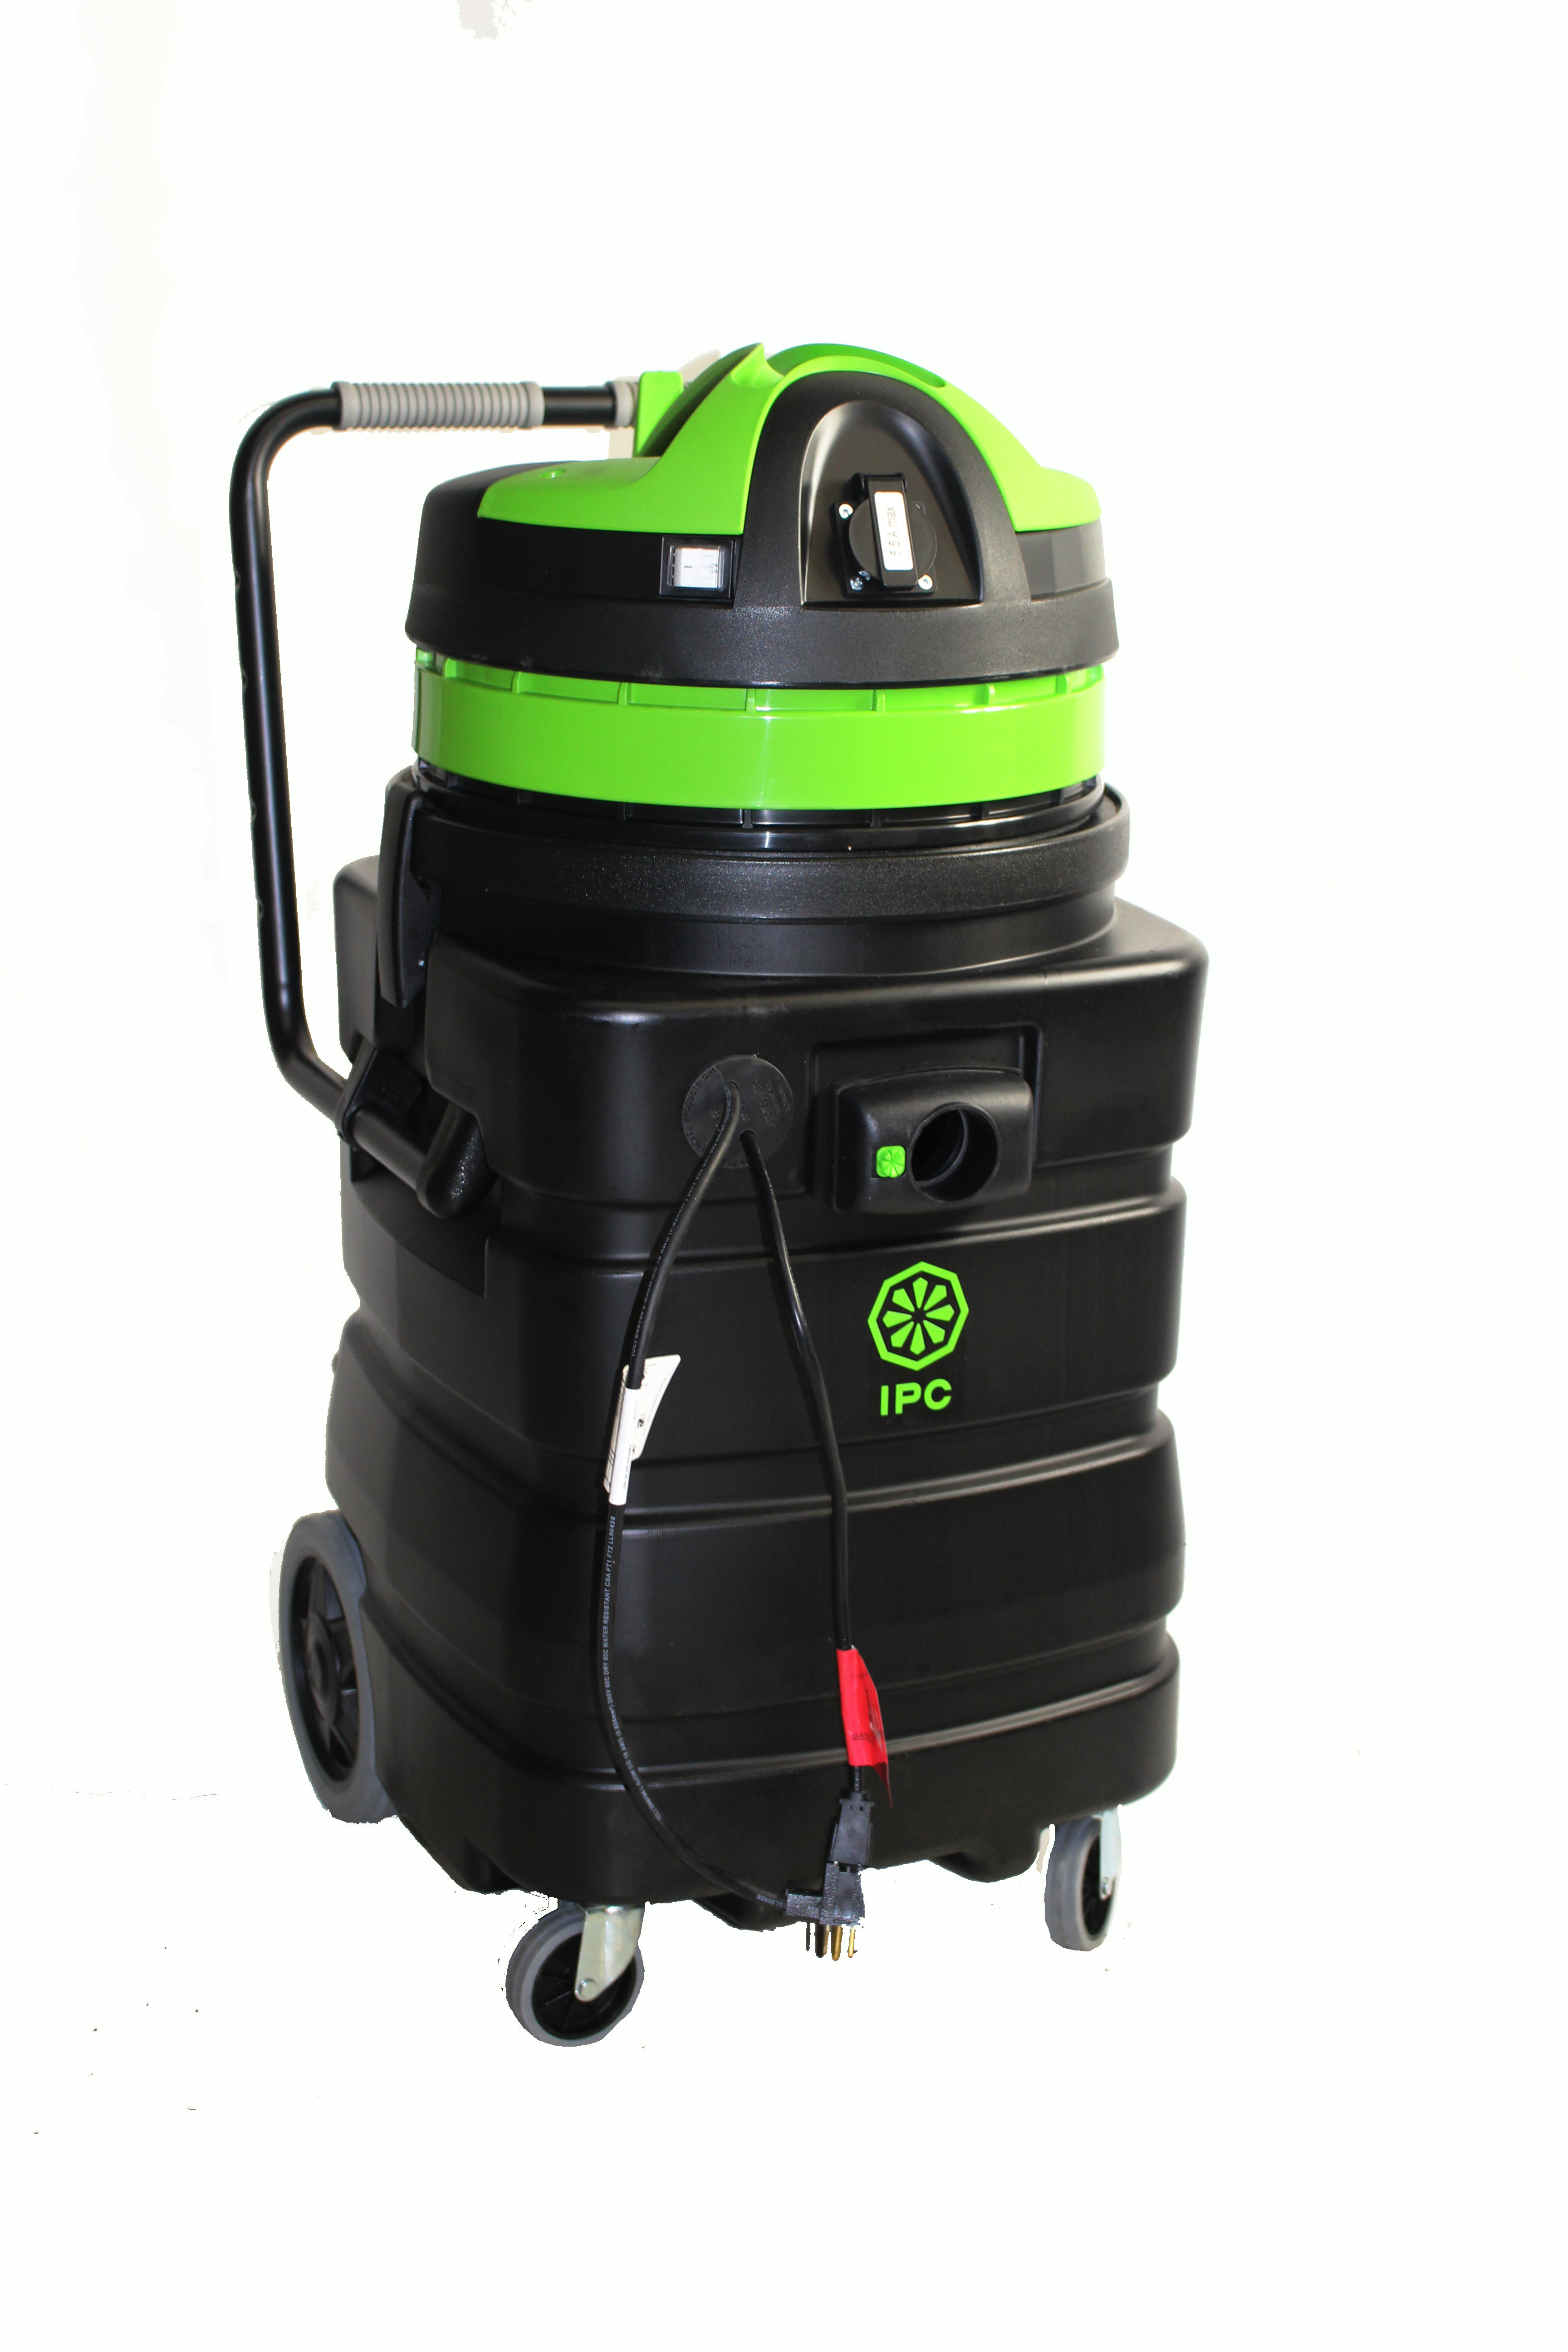 IPC Eagle Power S6415P-AD Industrial Wet/Dry Vacuum With Automatic Discharge 390